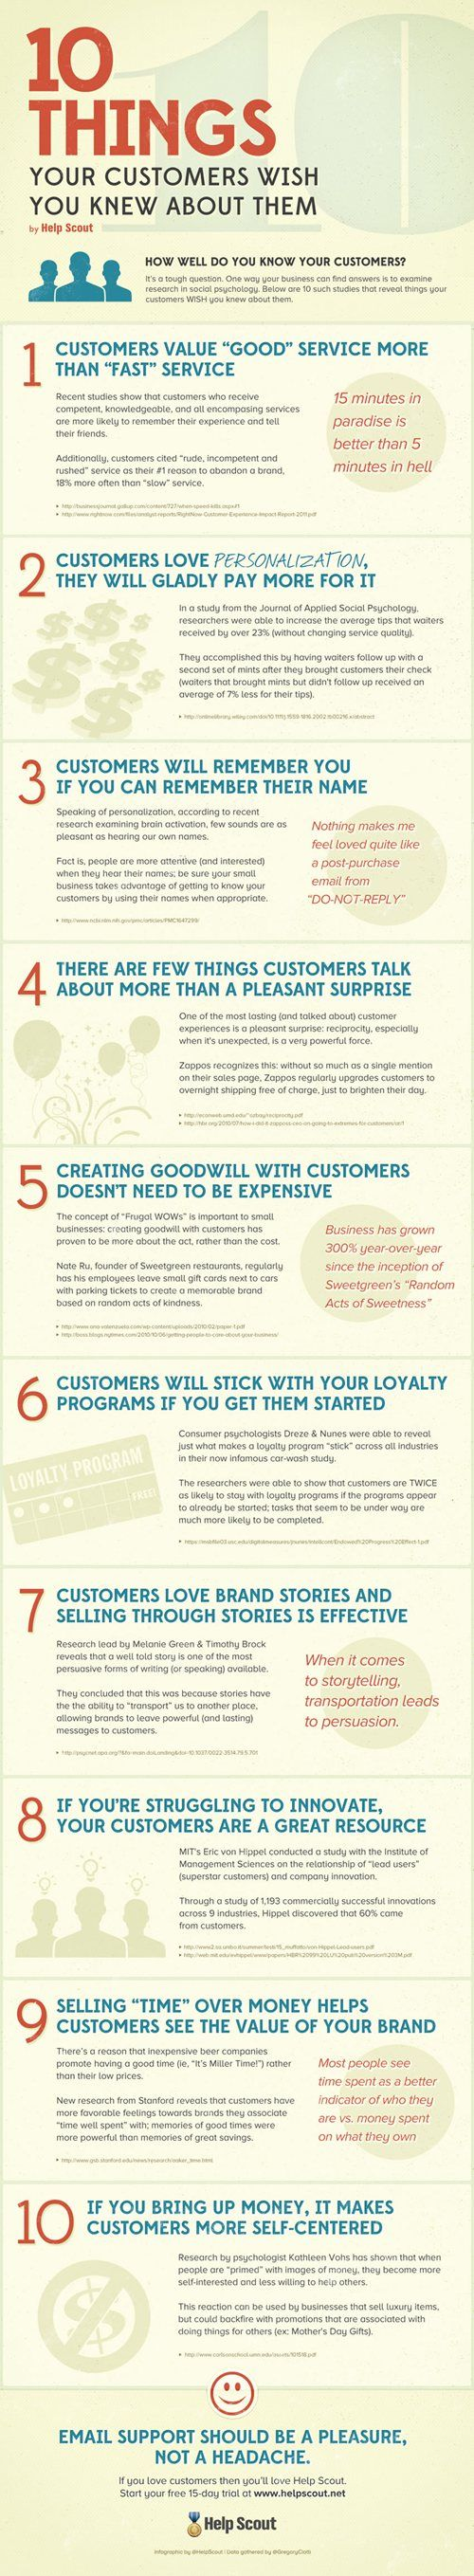 10 things Your Customers Wish You Knew